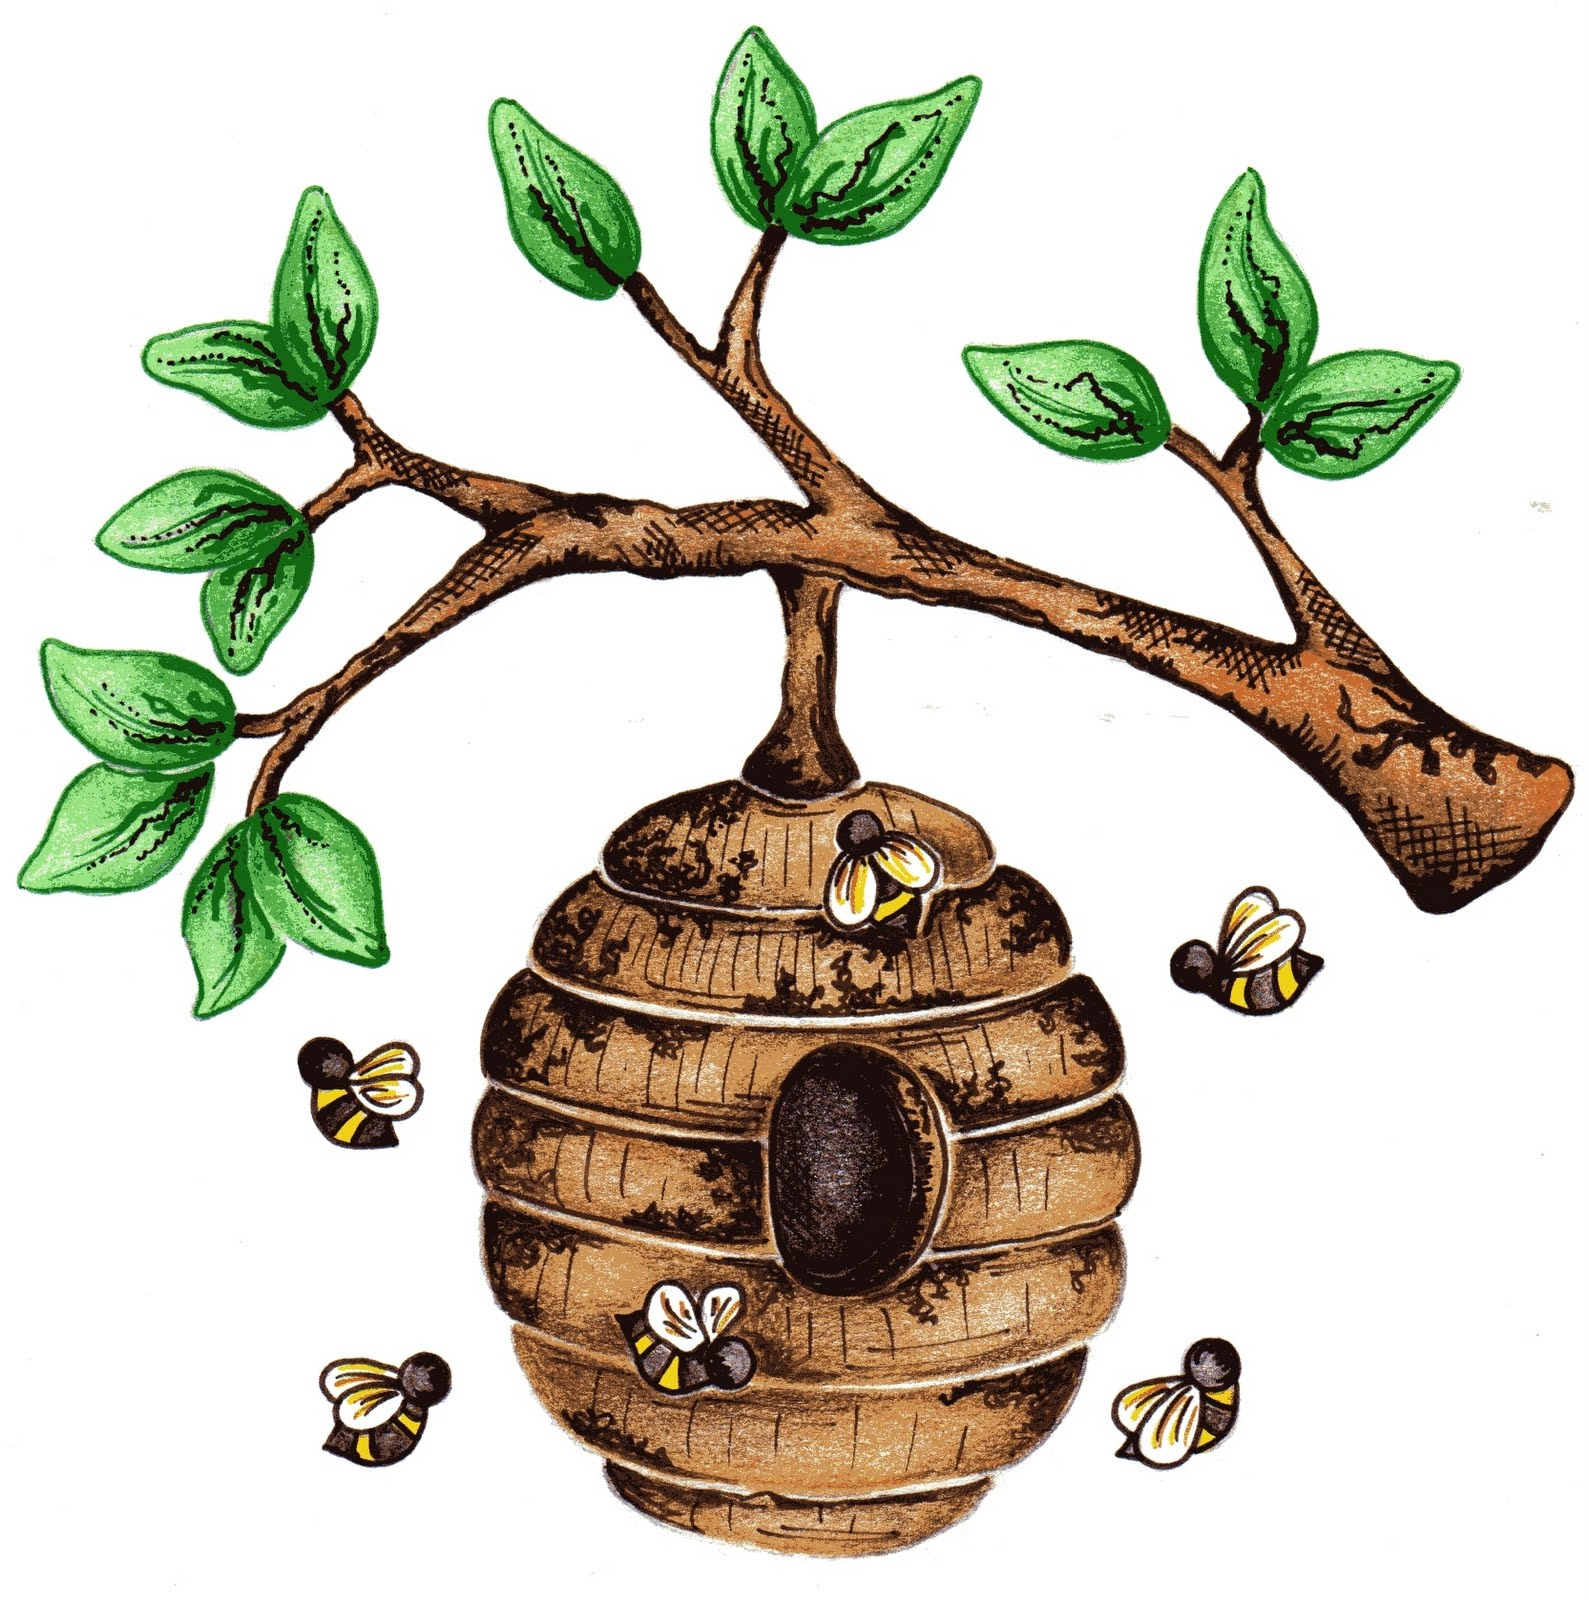 Beehive from tree clipart graphic free download Bee hive in tree clipart - ClipartFest graphic free download